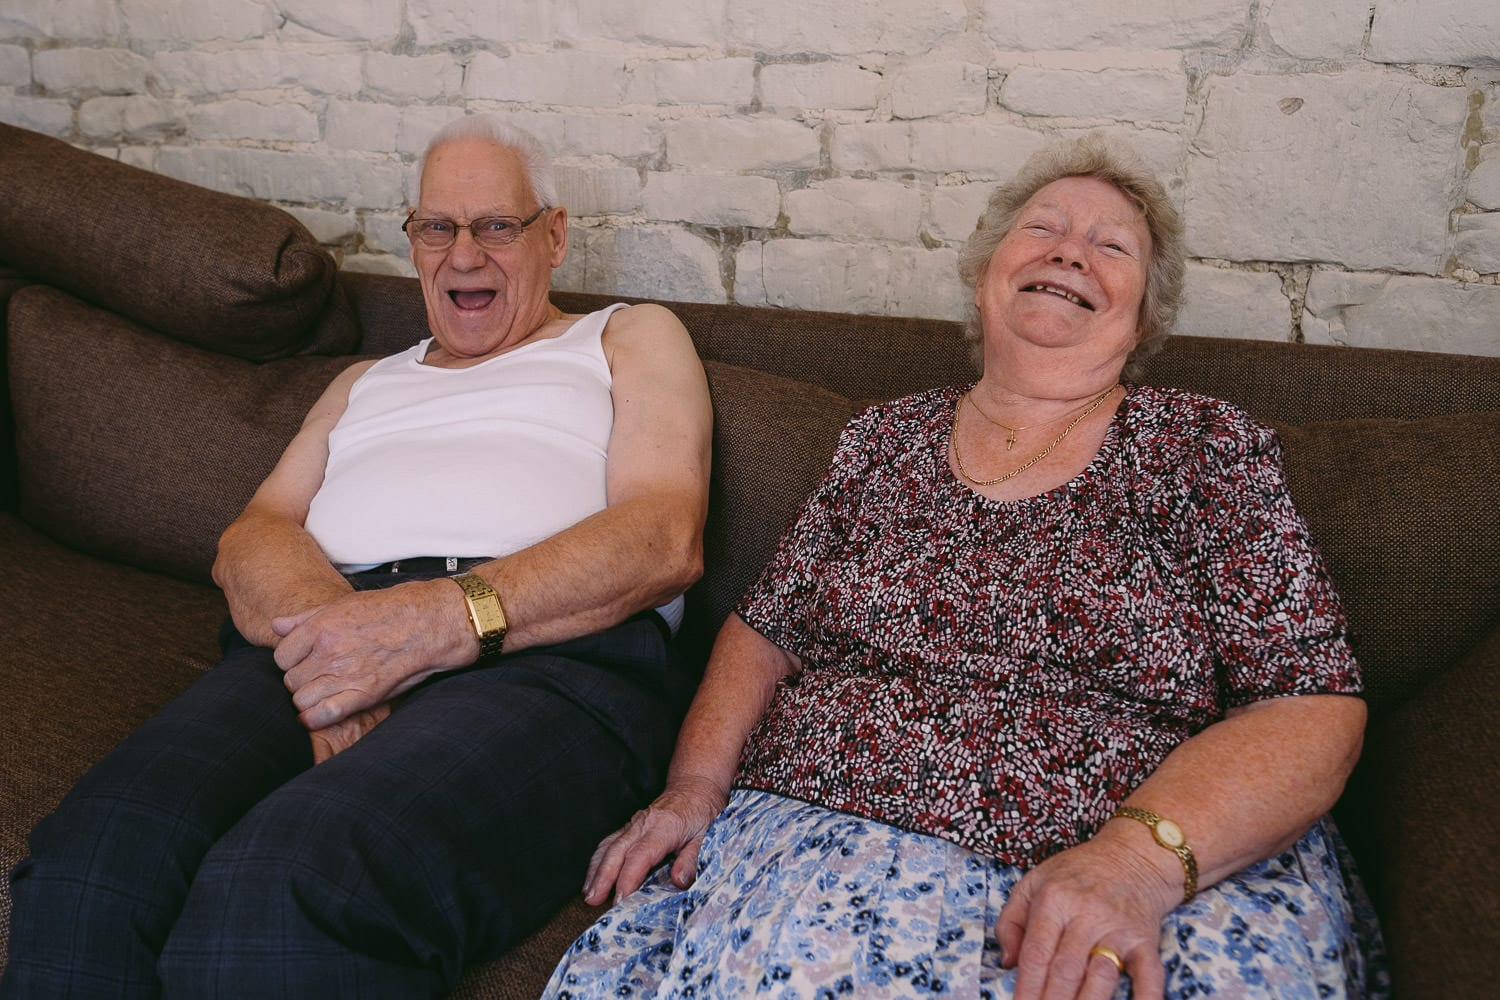 The bride's grandparents laughing